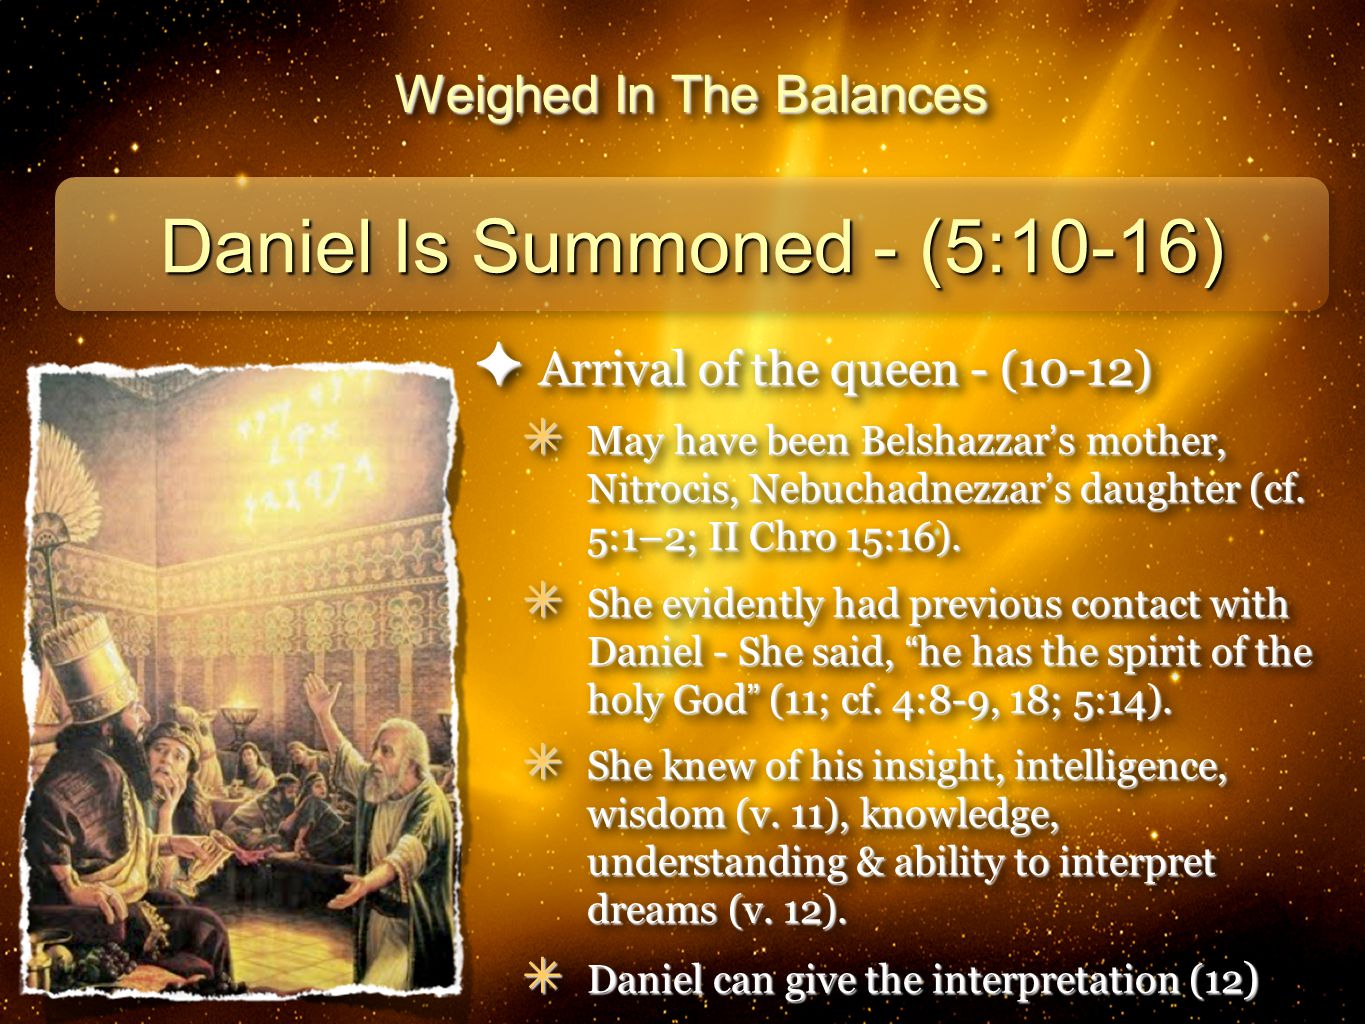 16 Weighed In The Balances Daniel Is Summoned - (5:10-16) ✦ Arrival of the queen - (10-12) ✴ May have been Belshazzar ' s mother, Nitrocis, Nebuchadnezzar ' s daughter (cf.